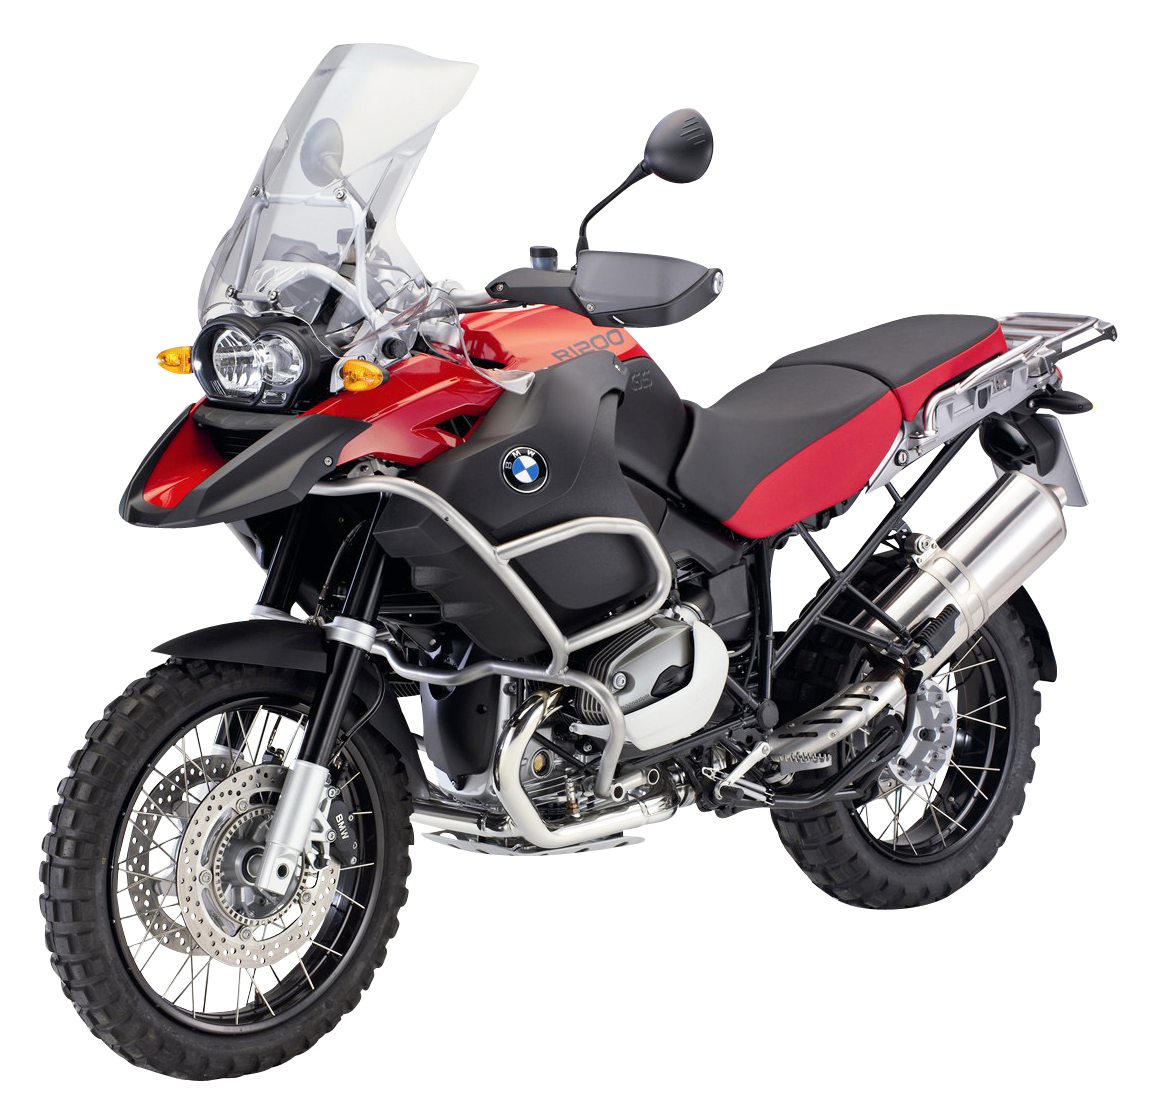 PNGPIX-COM-Red-BMW-R1200GS-Adventure-Motorcycle-Bike-PNG-Transparent-Image. png (1156×1110) | motorcycle | Pinterest - Bikers PNG HD